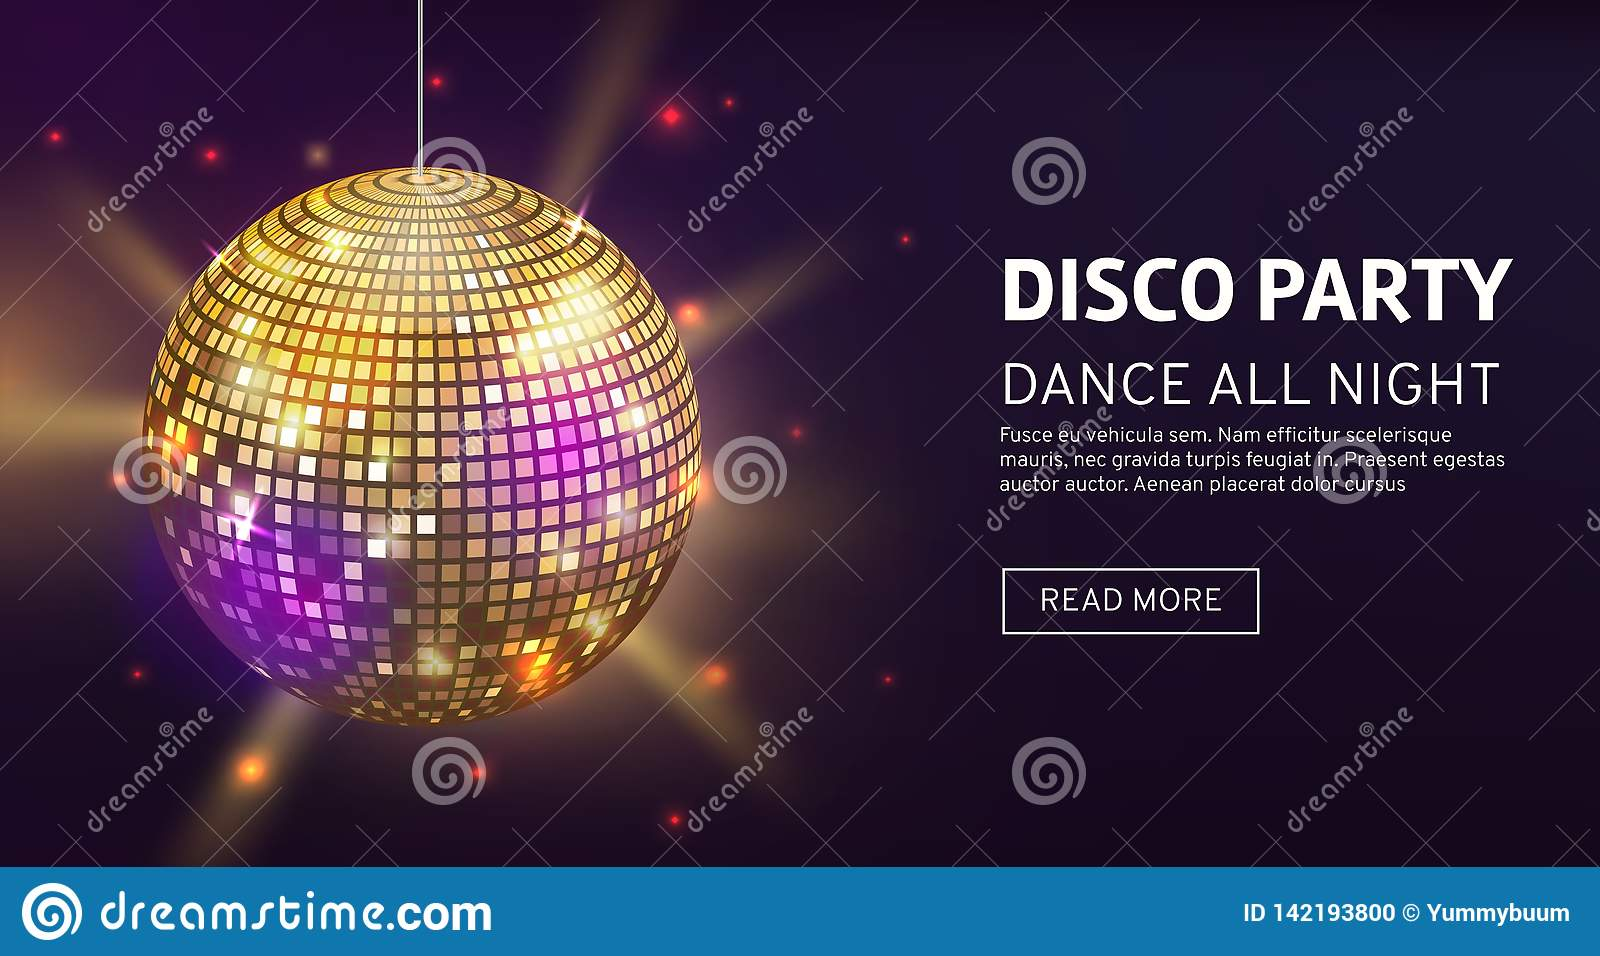 Disco banner. Mirrorball party disco ball invitation card celebration fashion partying poster template dance club